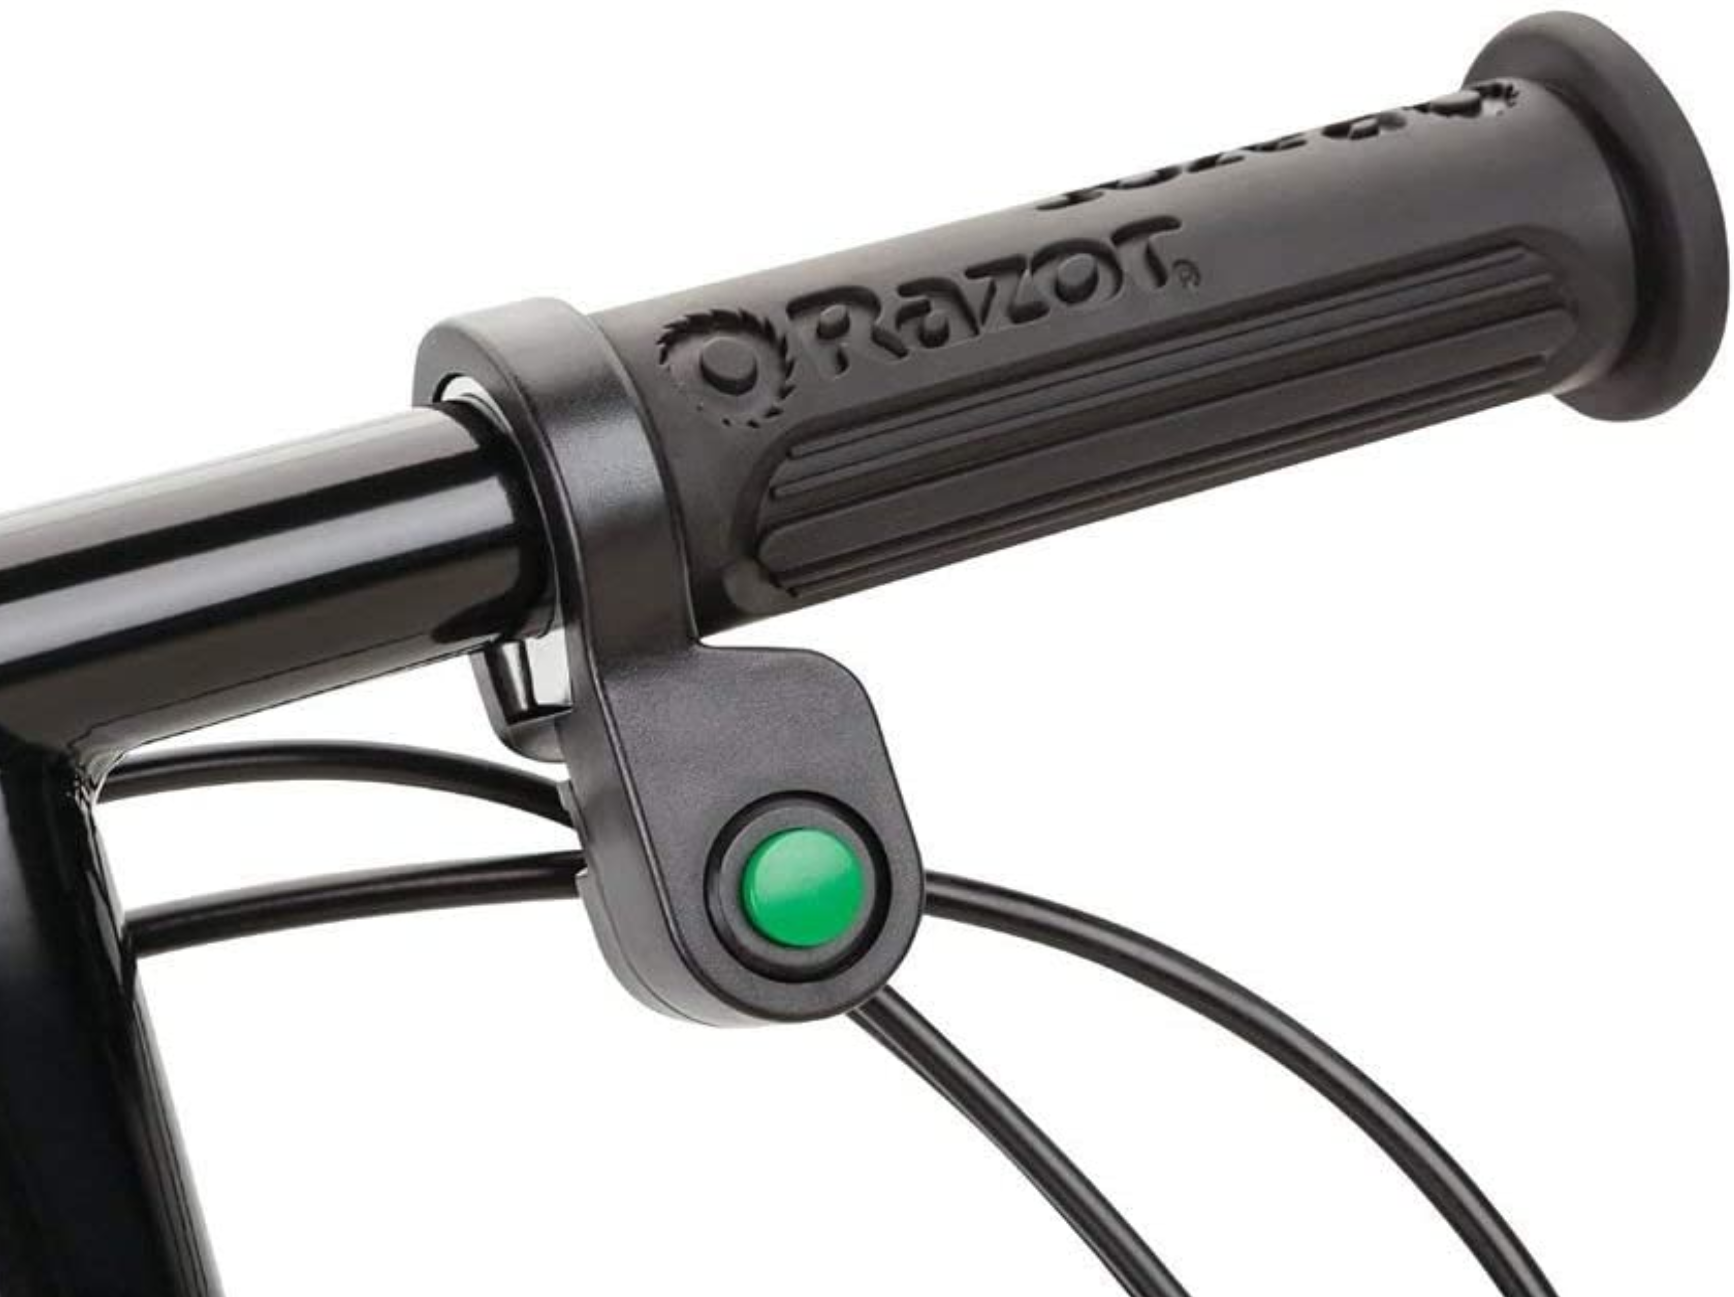 Rubber handle grips and green push-to-start acceleration function.